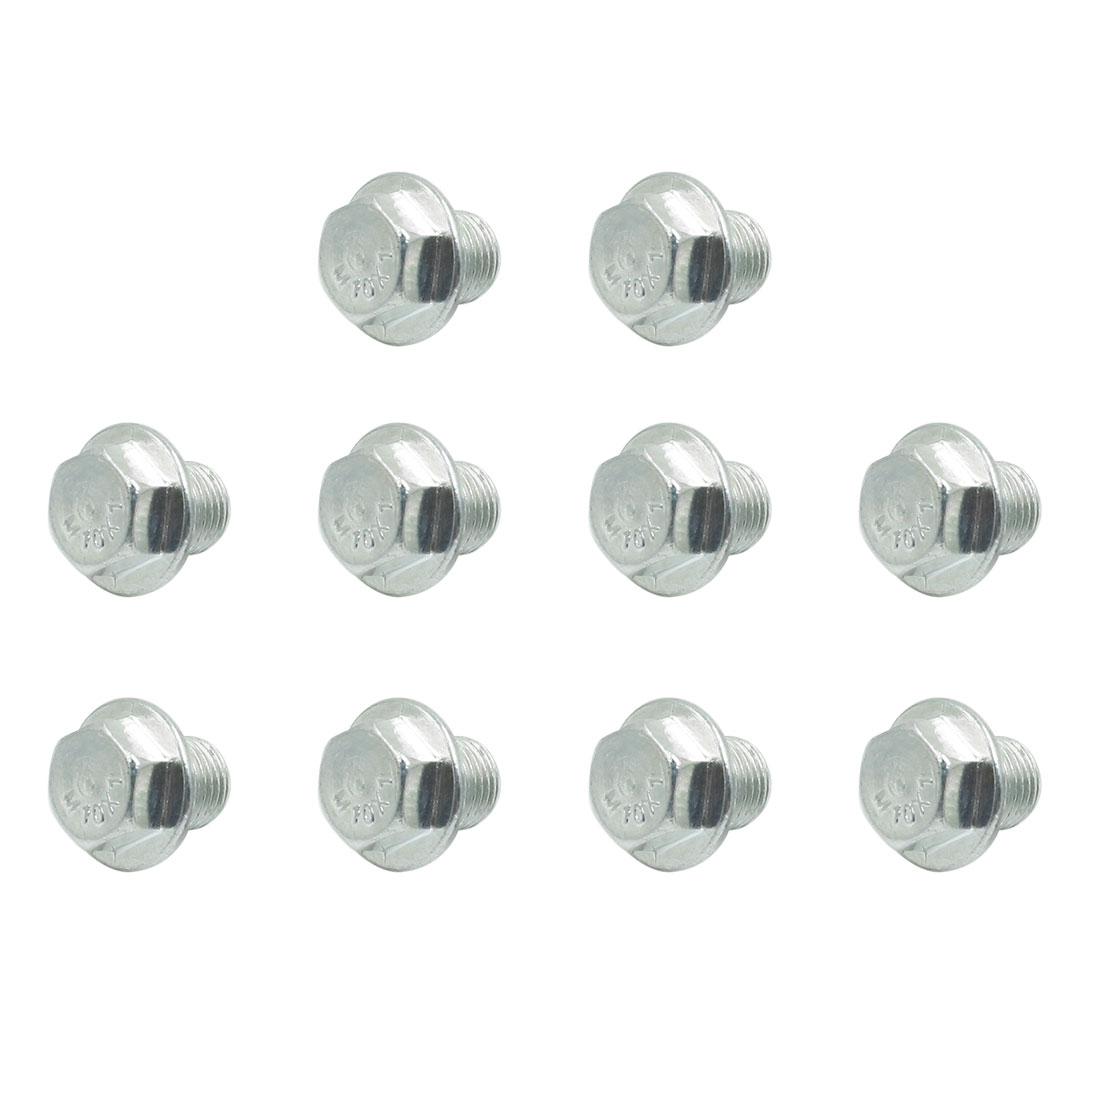 10pcs 17.5 x 16.5mm Car Silver Tone Magnetic Engine Oil Pan Drain Plug Bolt